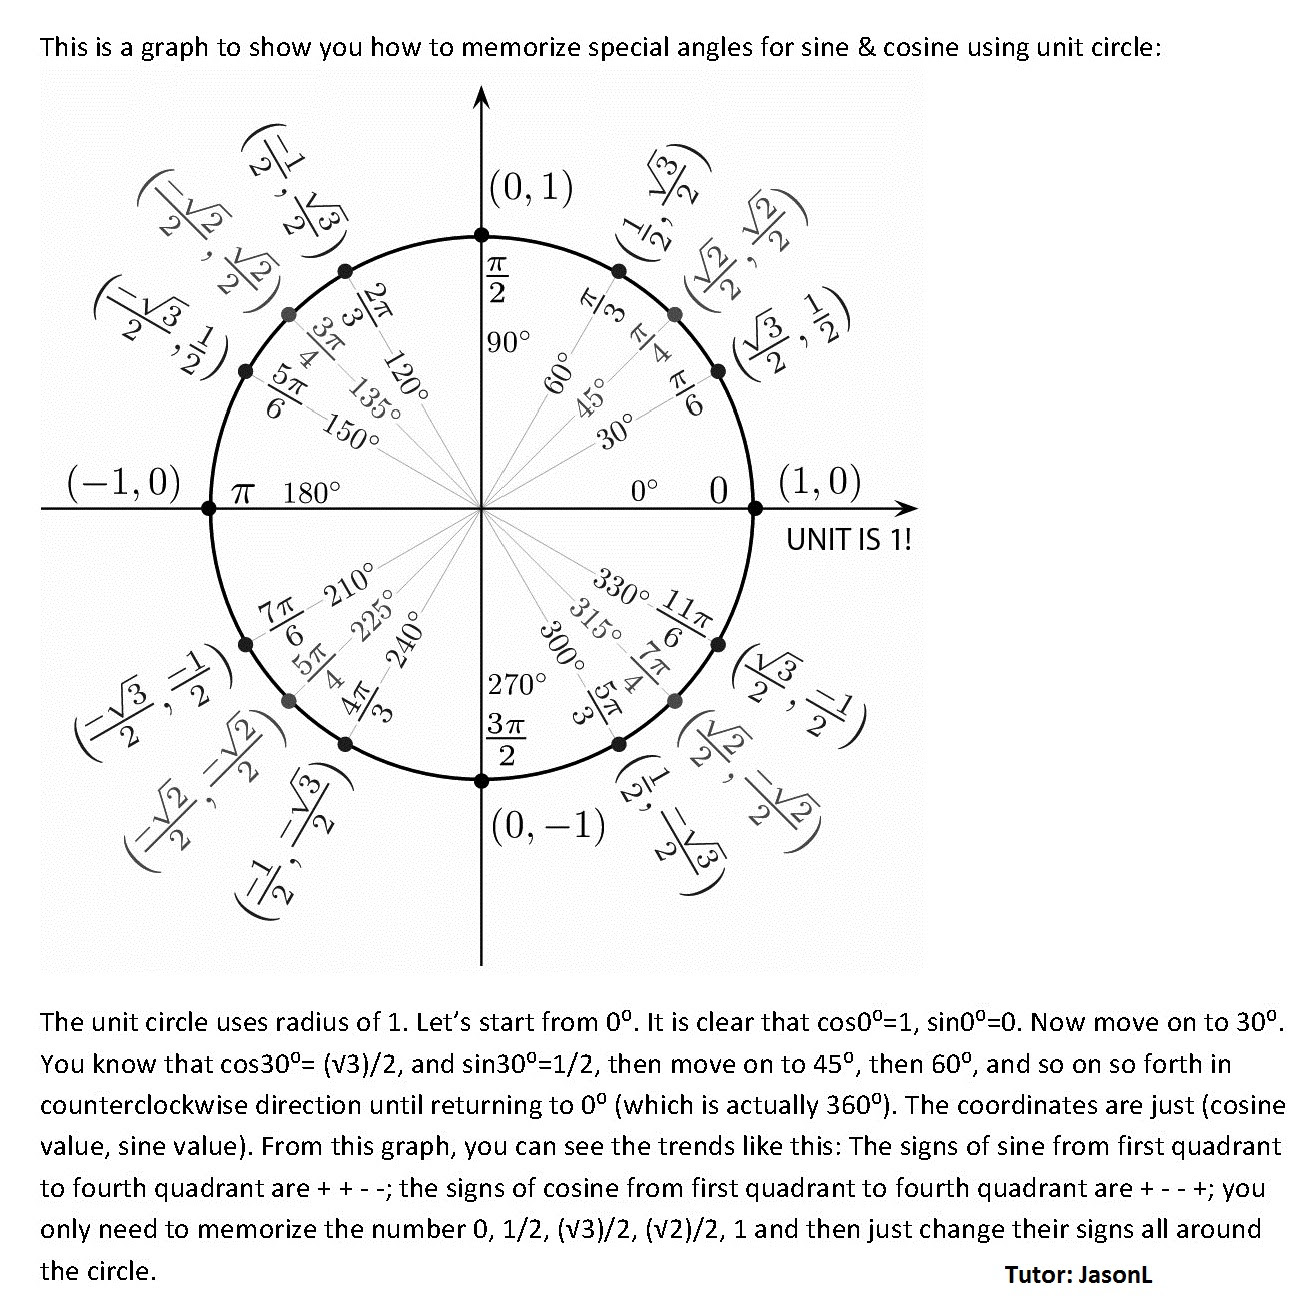 How to memorize Special Angles for Sine and Cosine using unit circle